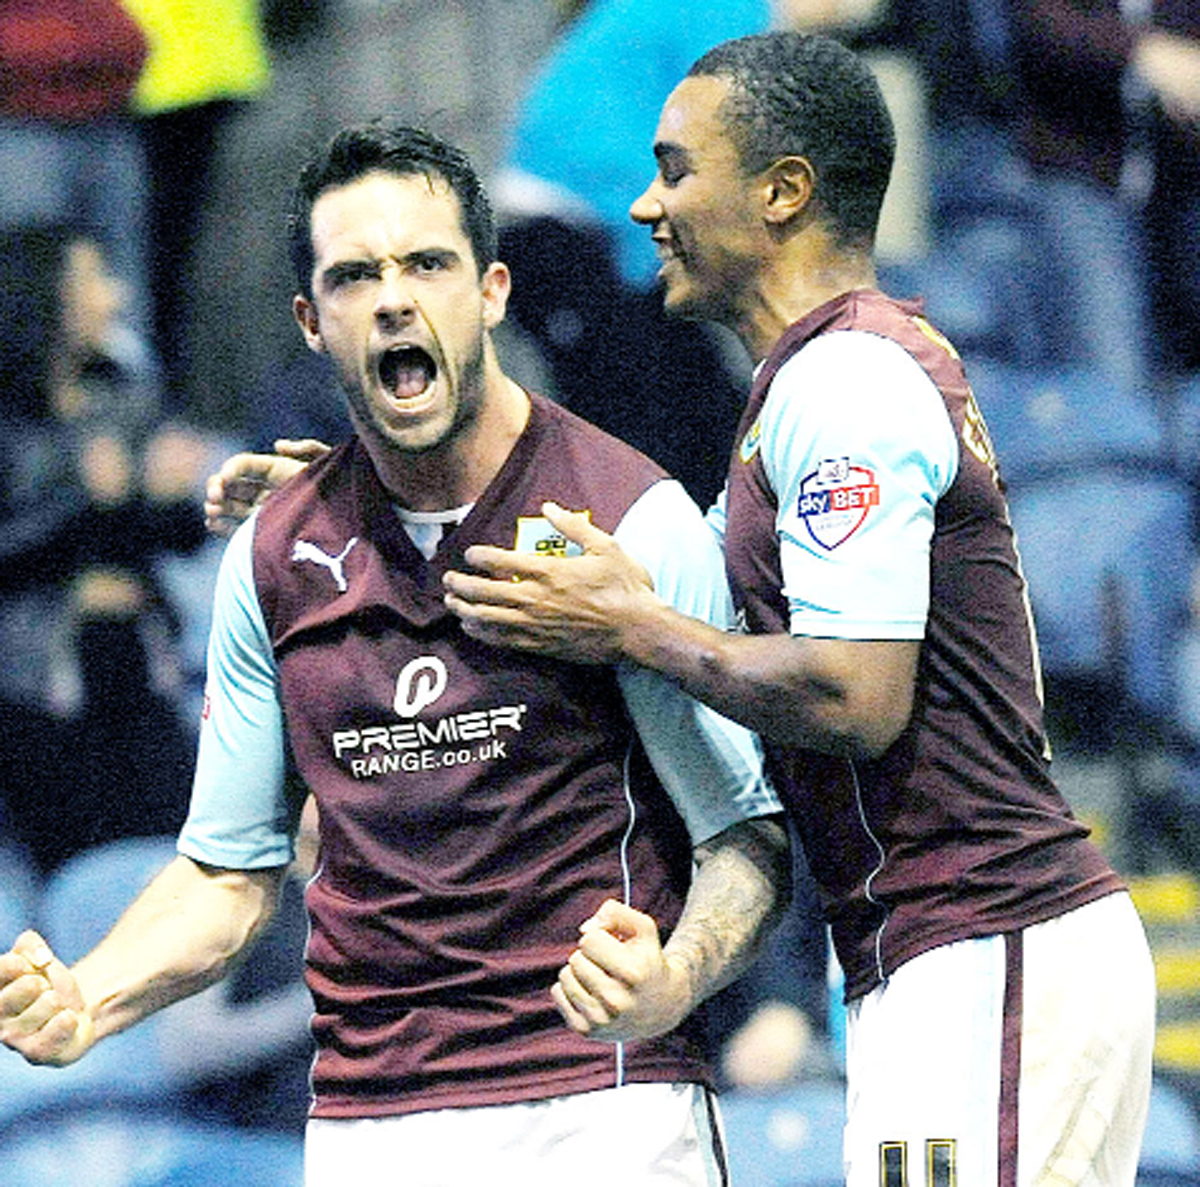 Blackburn Rovers fan apologises for offensive tweet about Burnley player